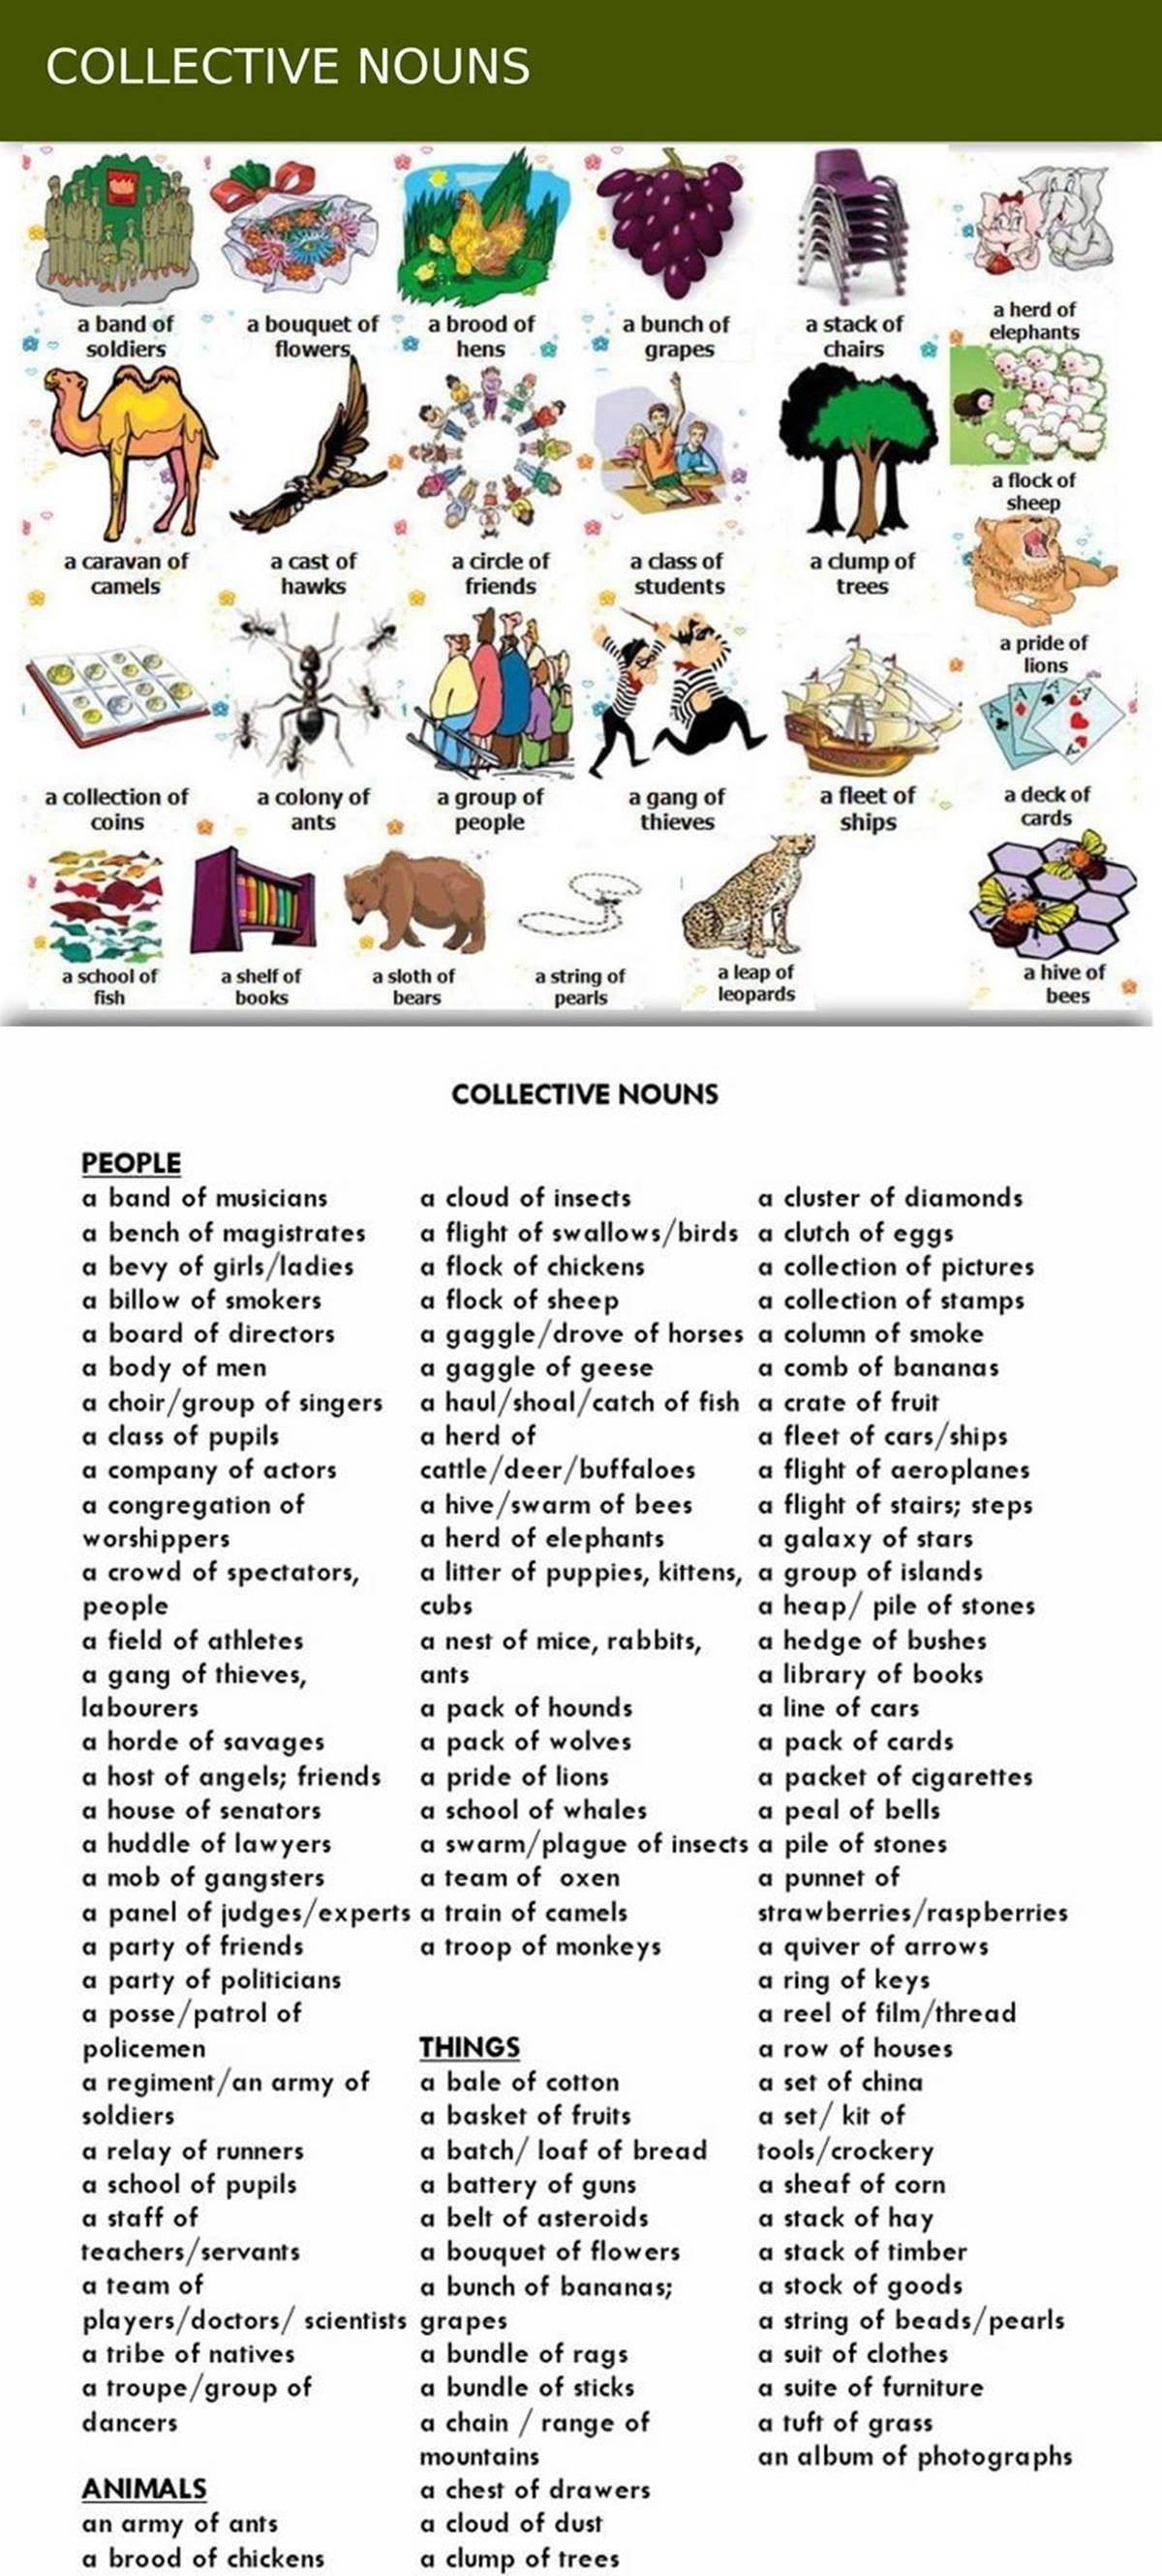 Collective Nouns Group Words For People Animals And Things